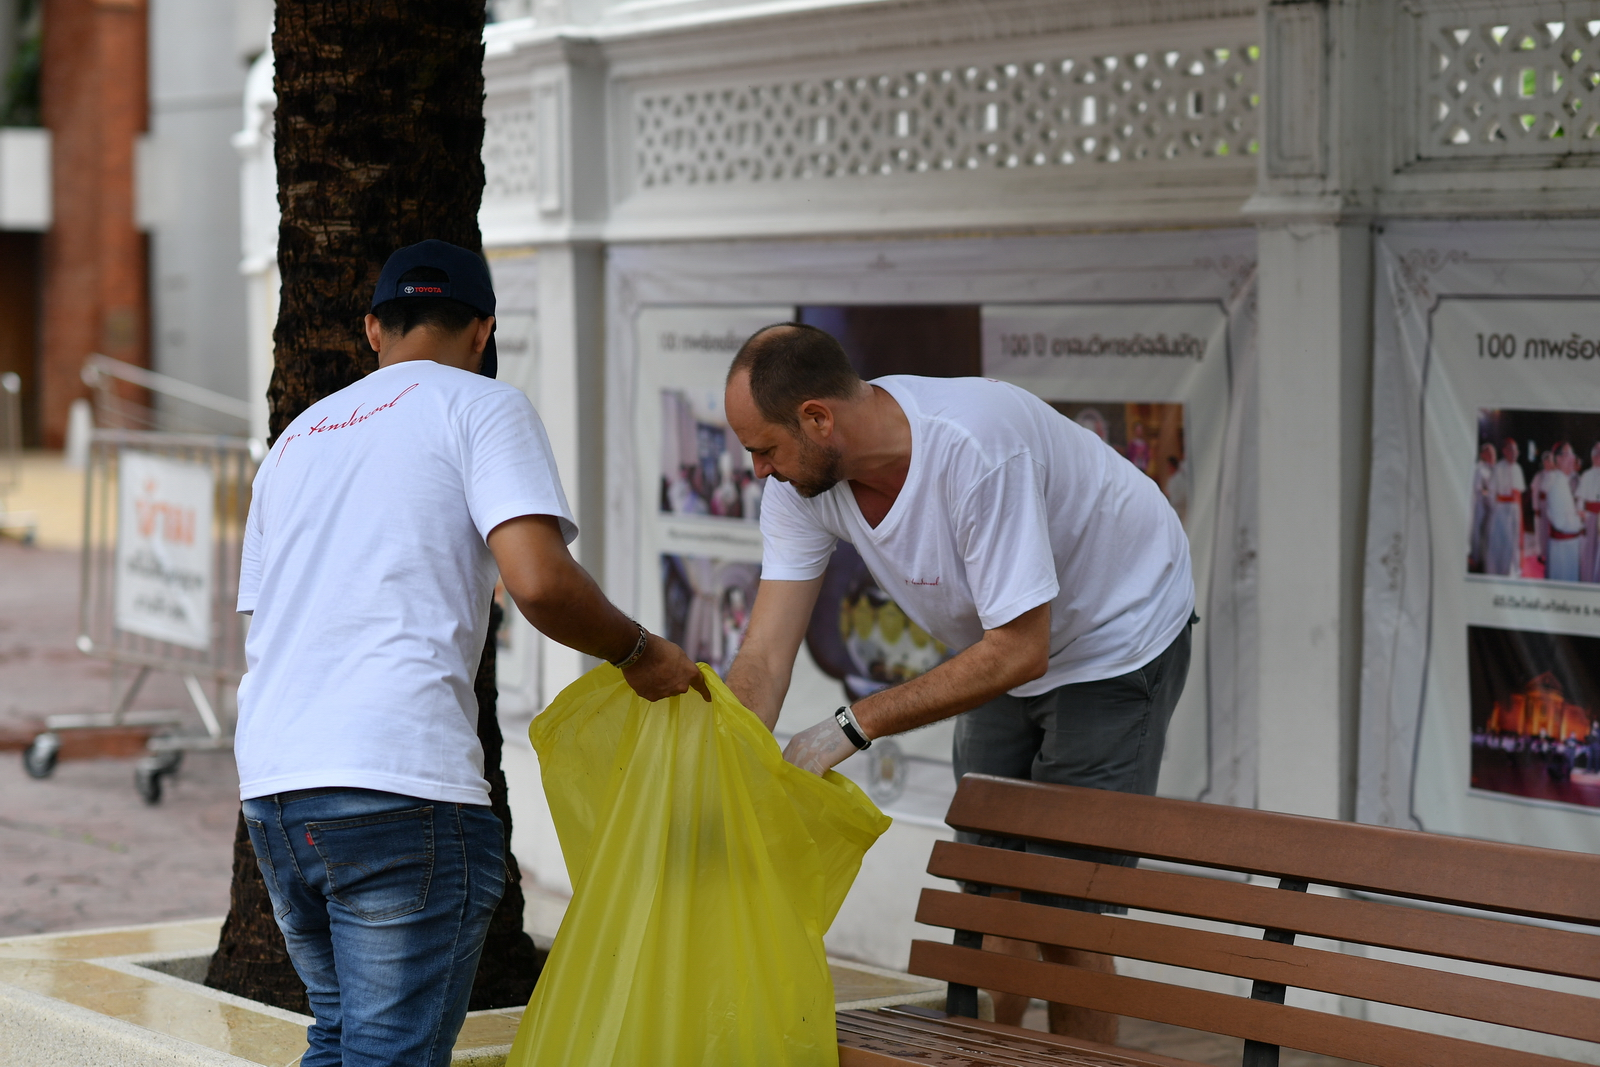 PTendercool-Event-Clean Up The World-190921-061